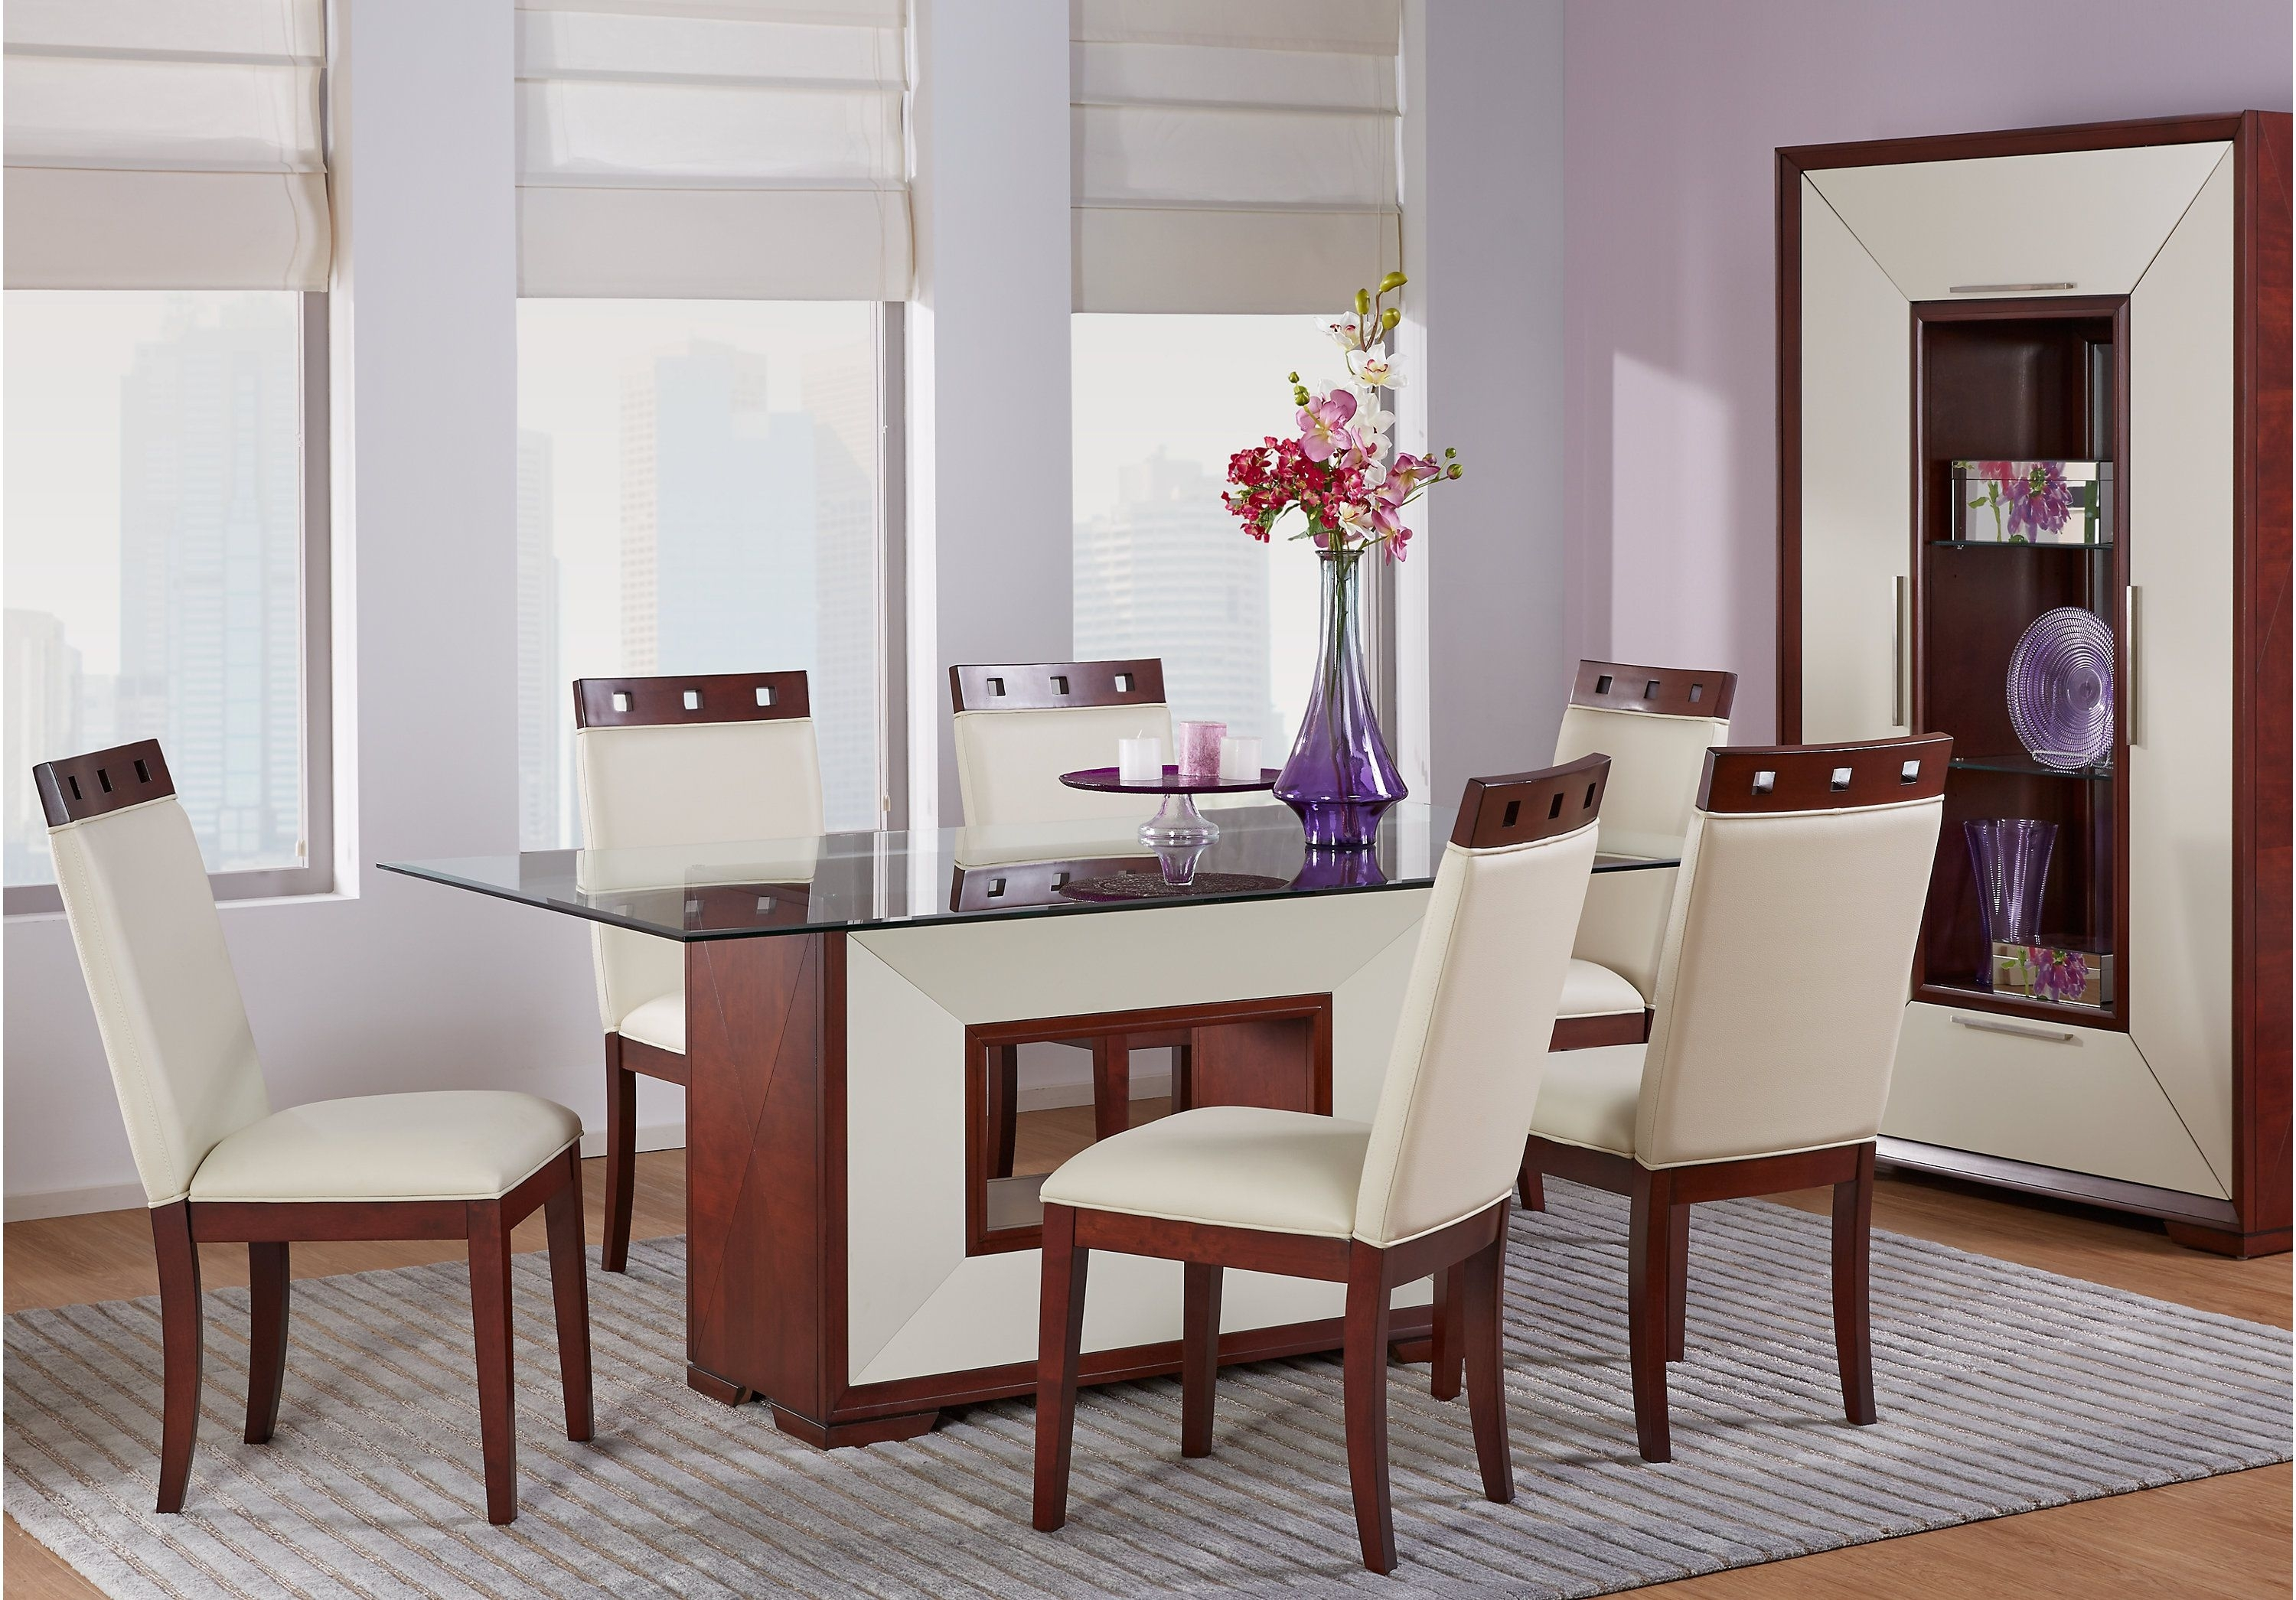 Sofia Vergara Savona Ivory 5 Pc Rectangle Dining Room With Glass Top With Recent Caira 7 Piece Rectangular Dining Sets With Diamond Back Side Chairs (View 15 of 20)